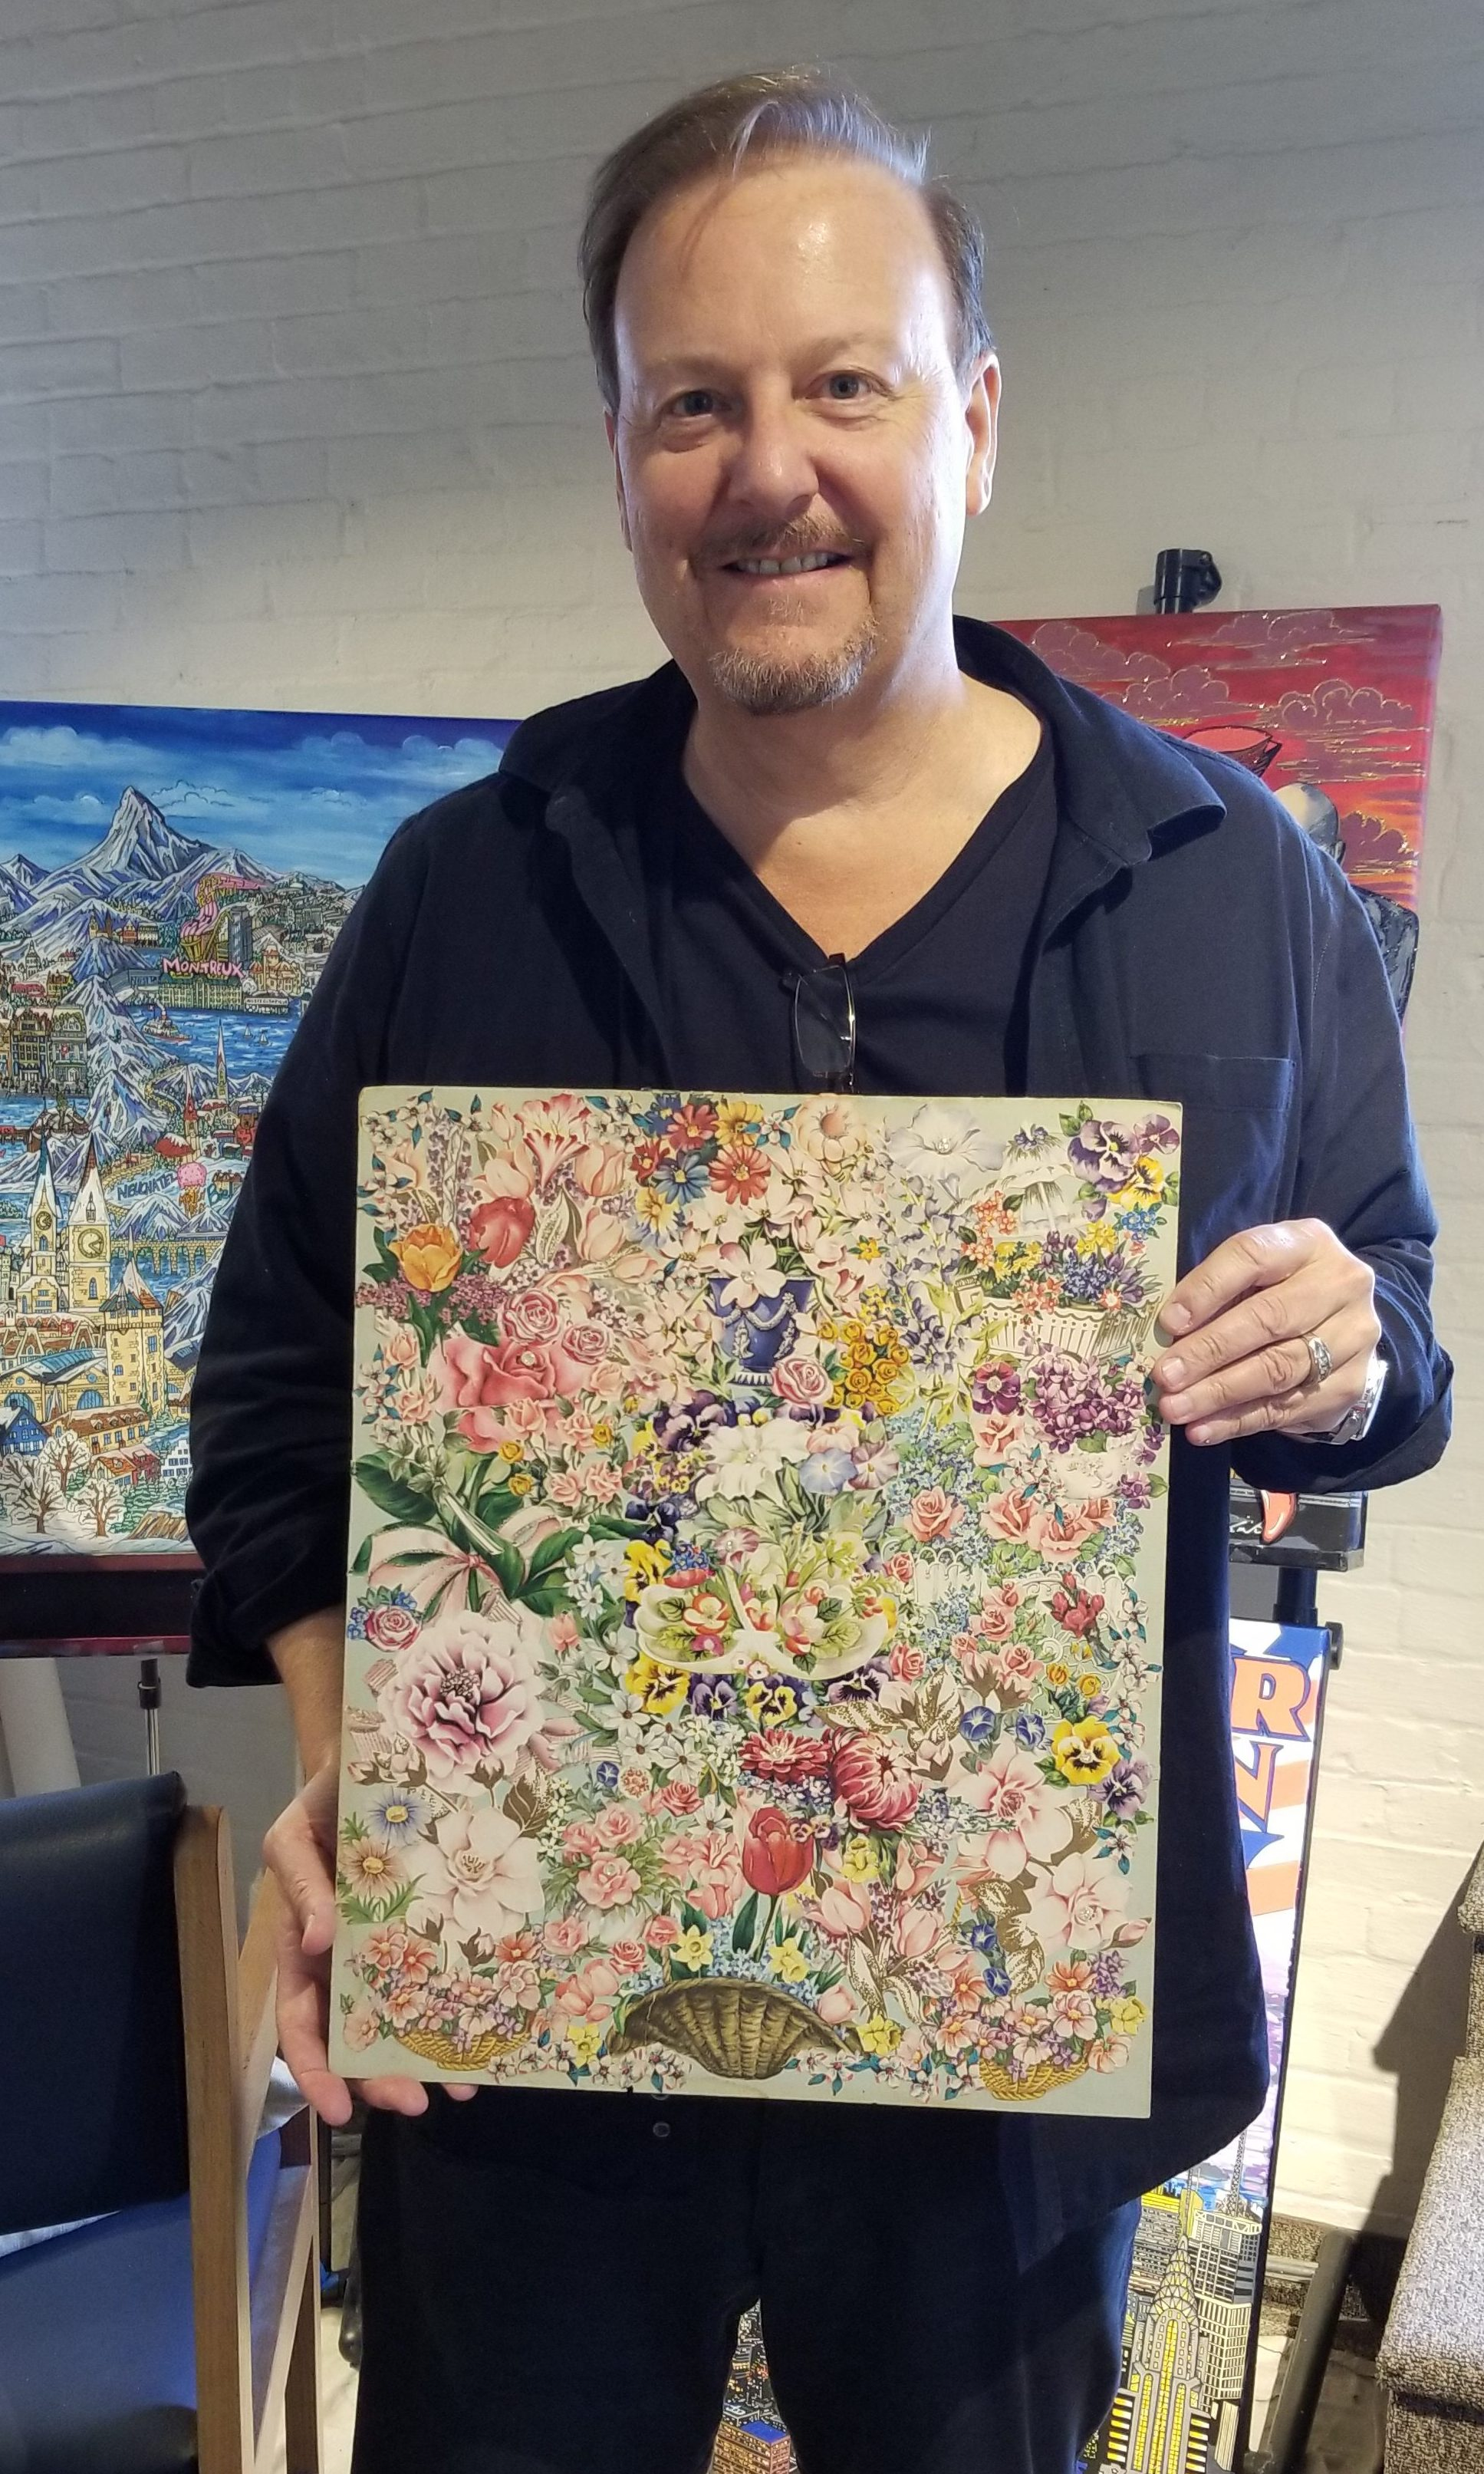 Charles Fazzino standing up holding a multi-colored floral art piece